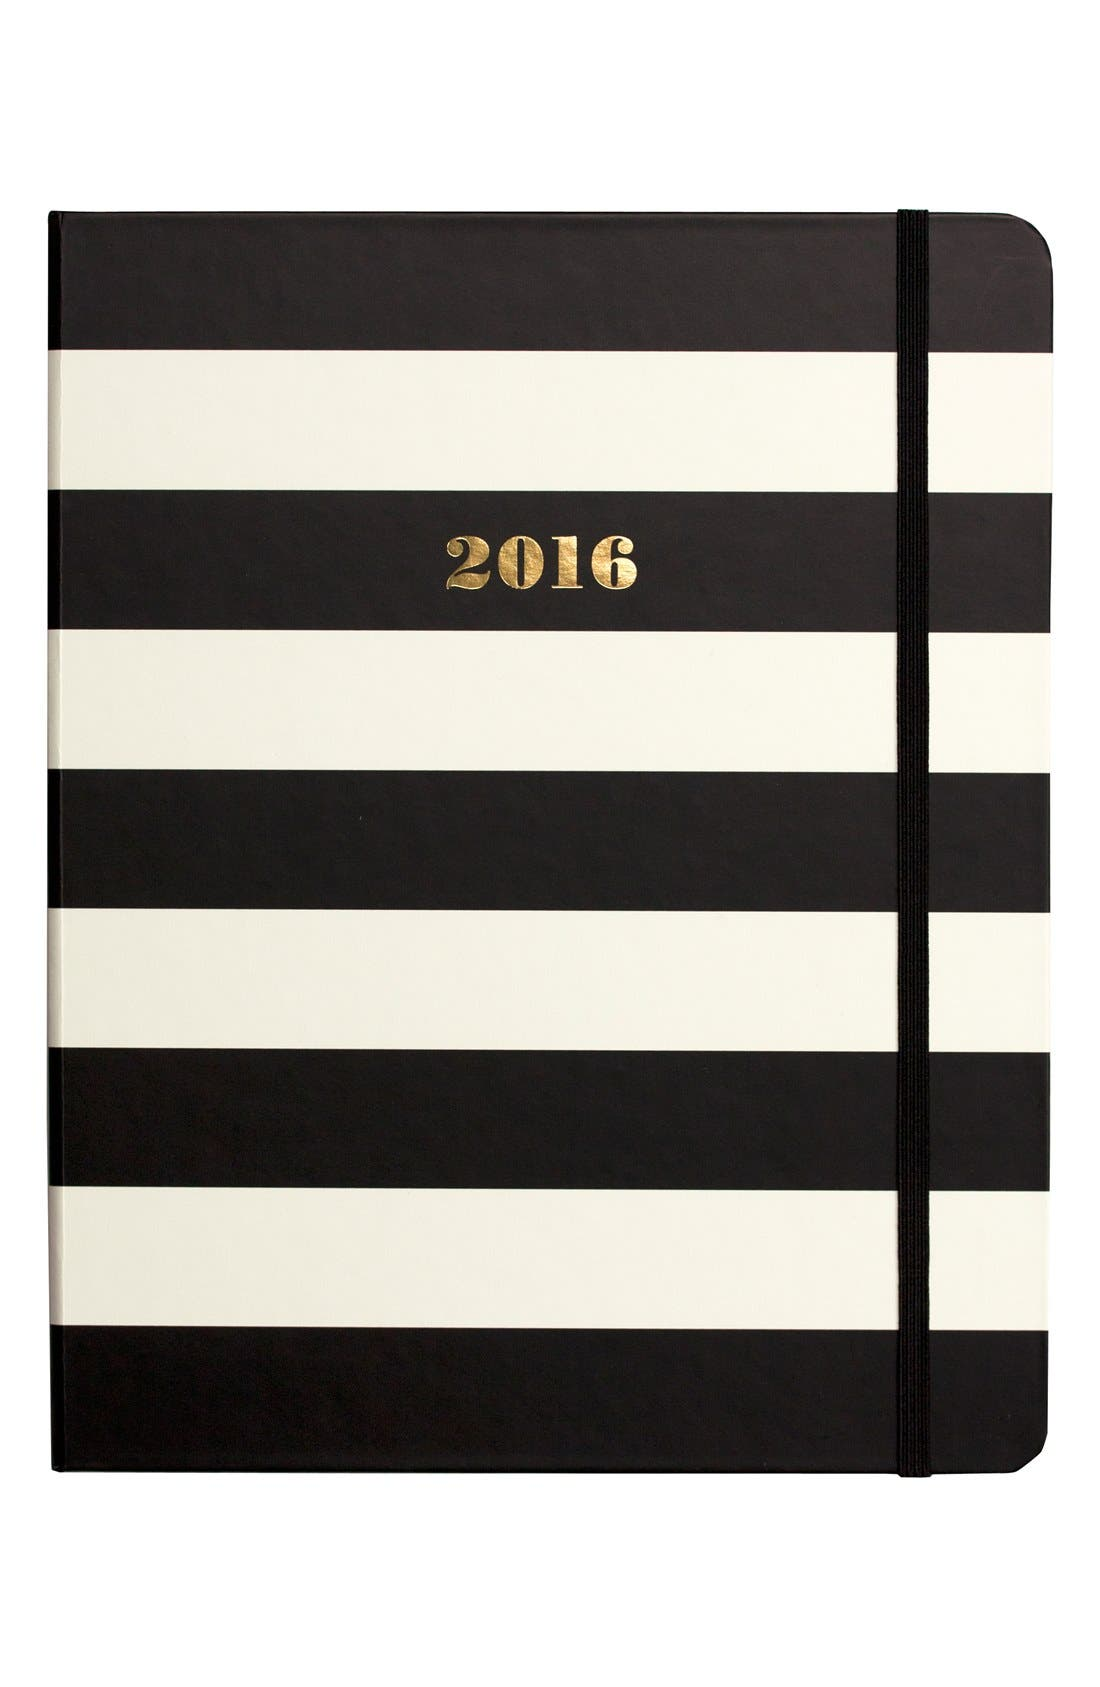 Main Image - kate spade new york large 17-month 2016 planner